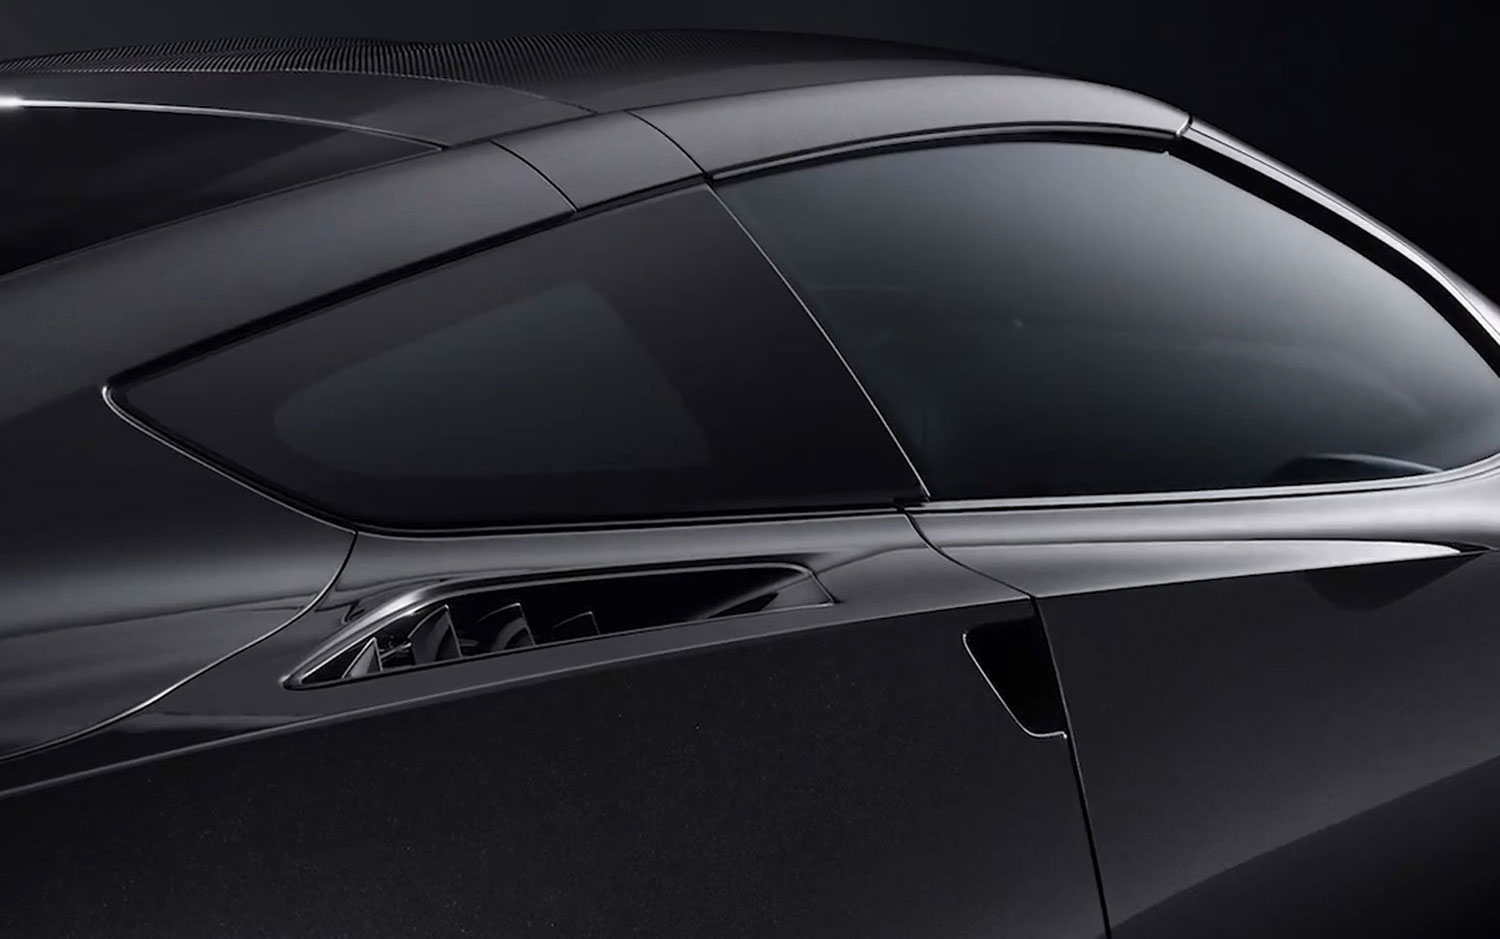 Cars Model 2013 2014: Official GM Videos Reveal Even More on